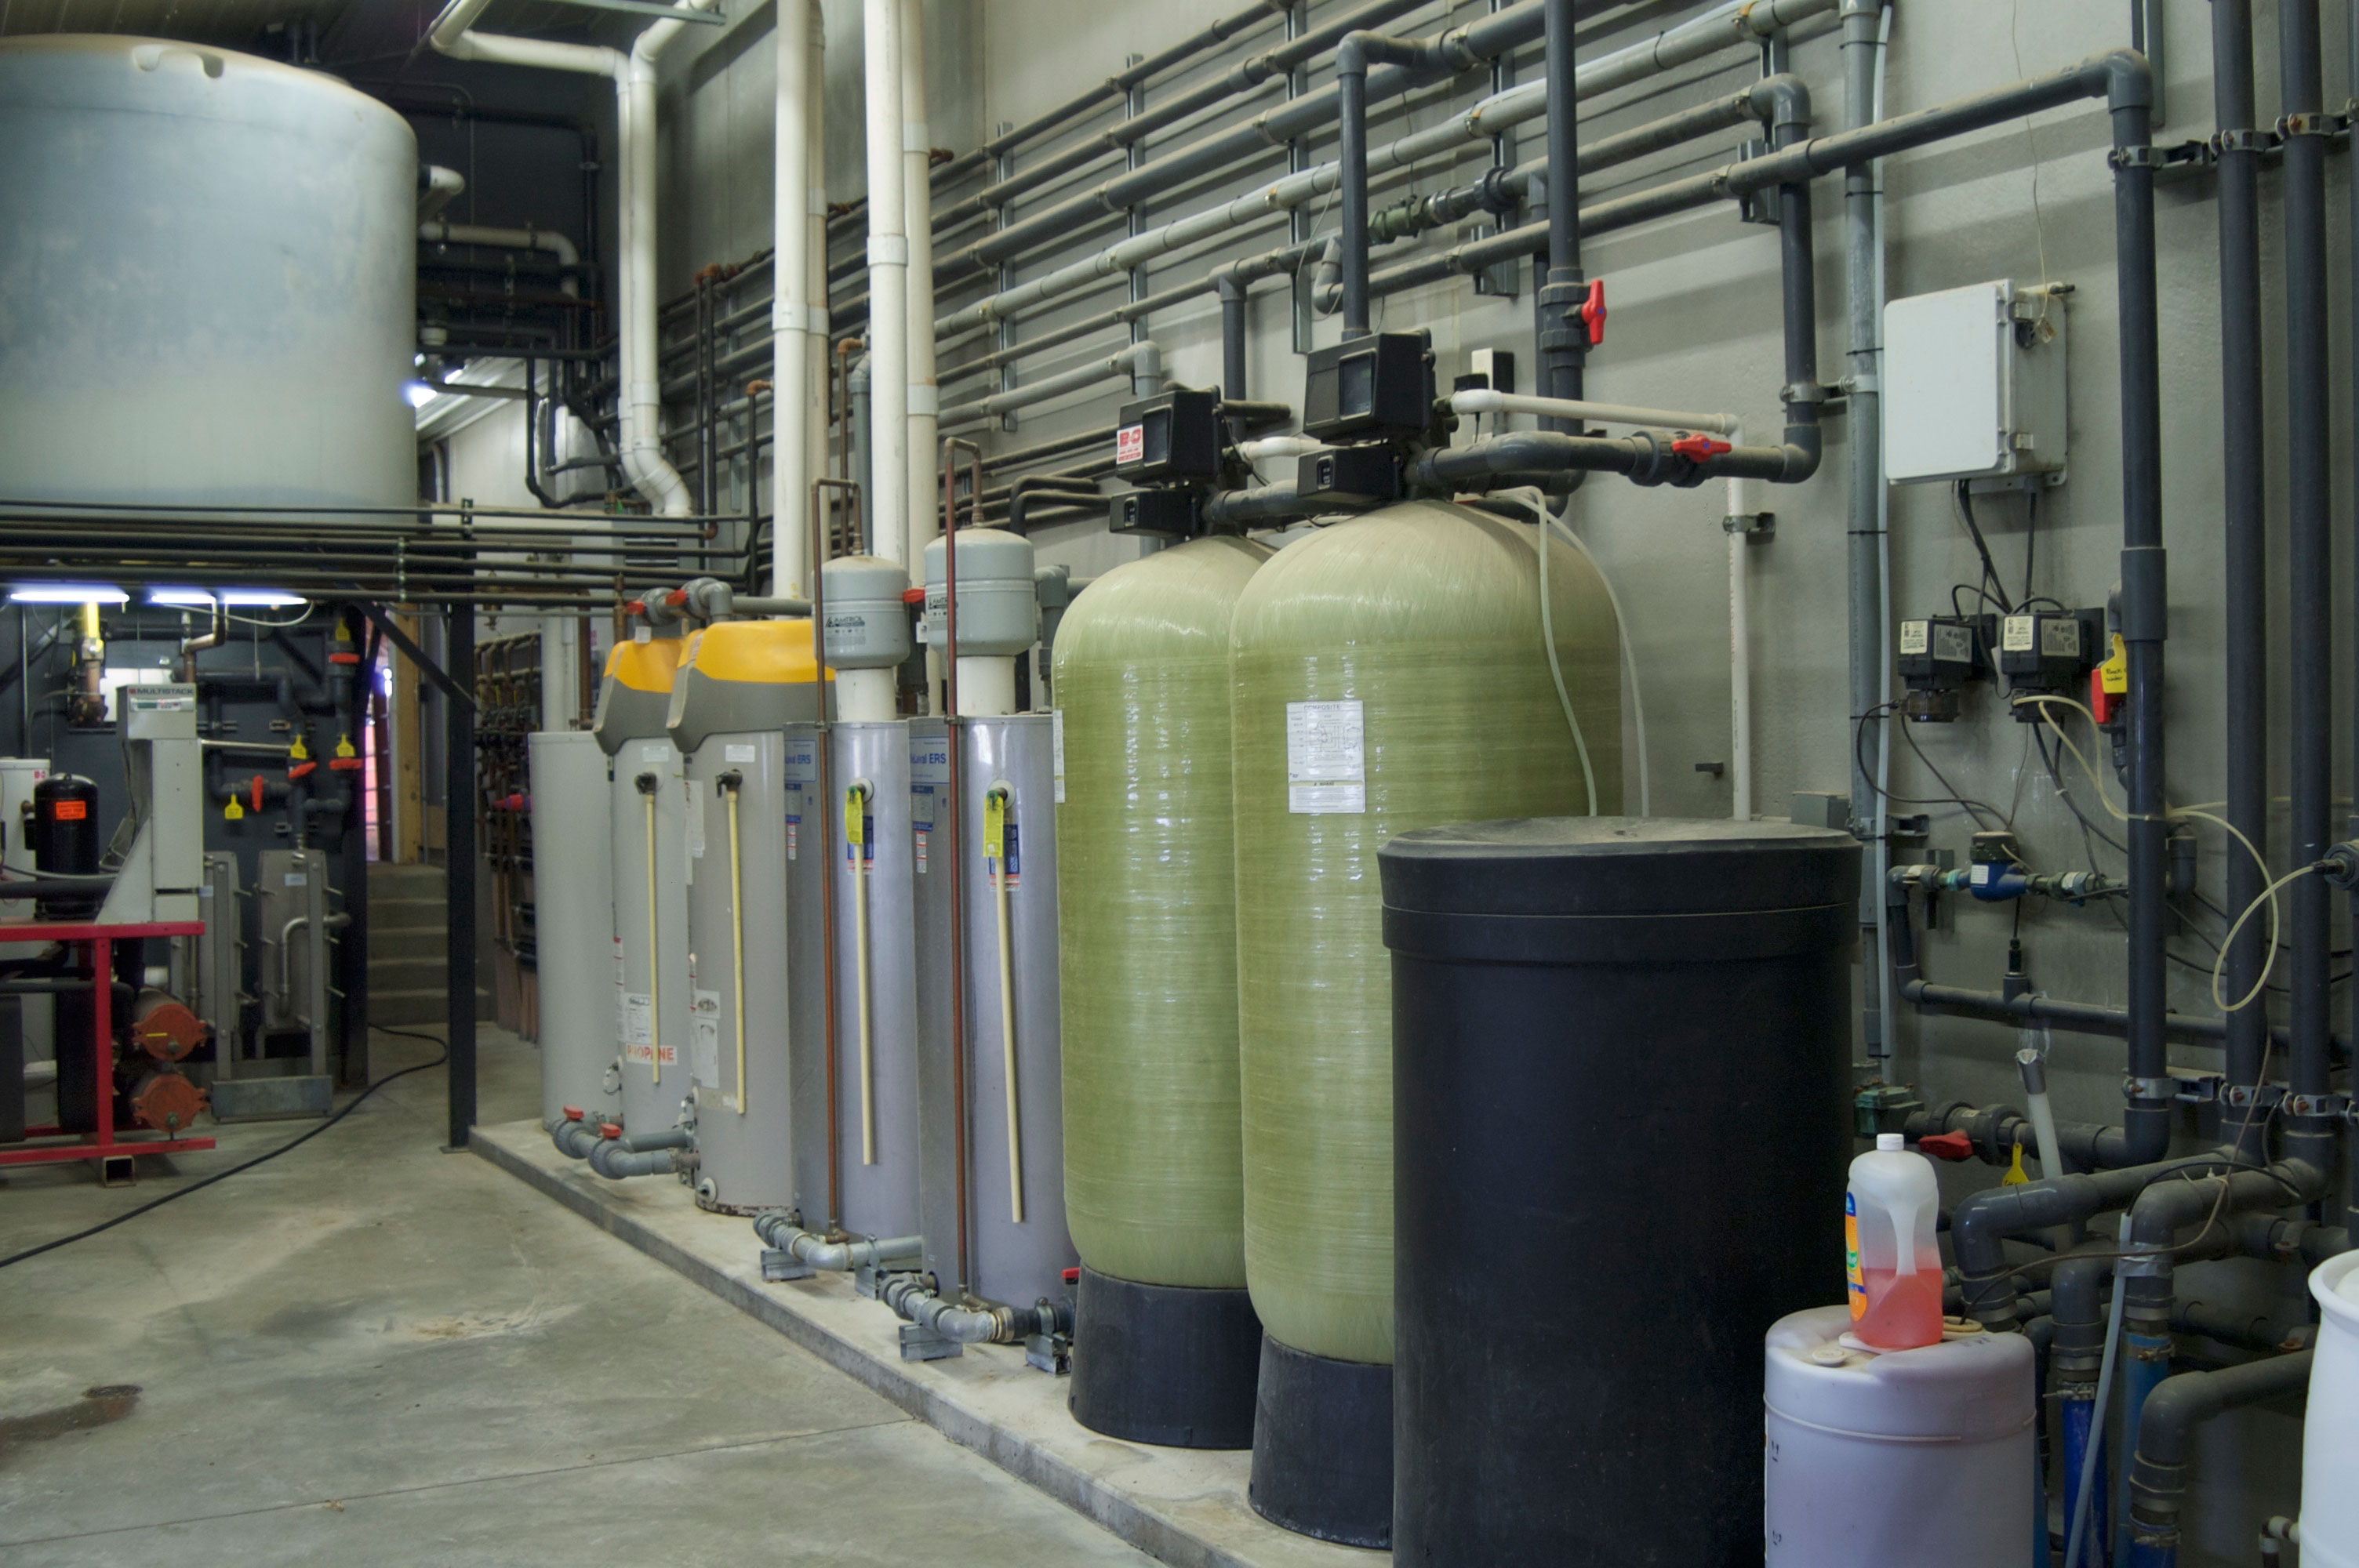 Geothermal Systems & Design